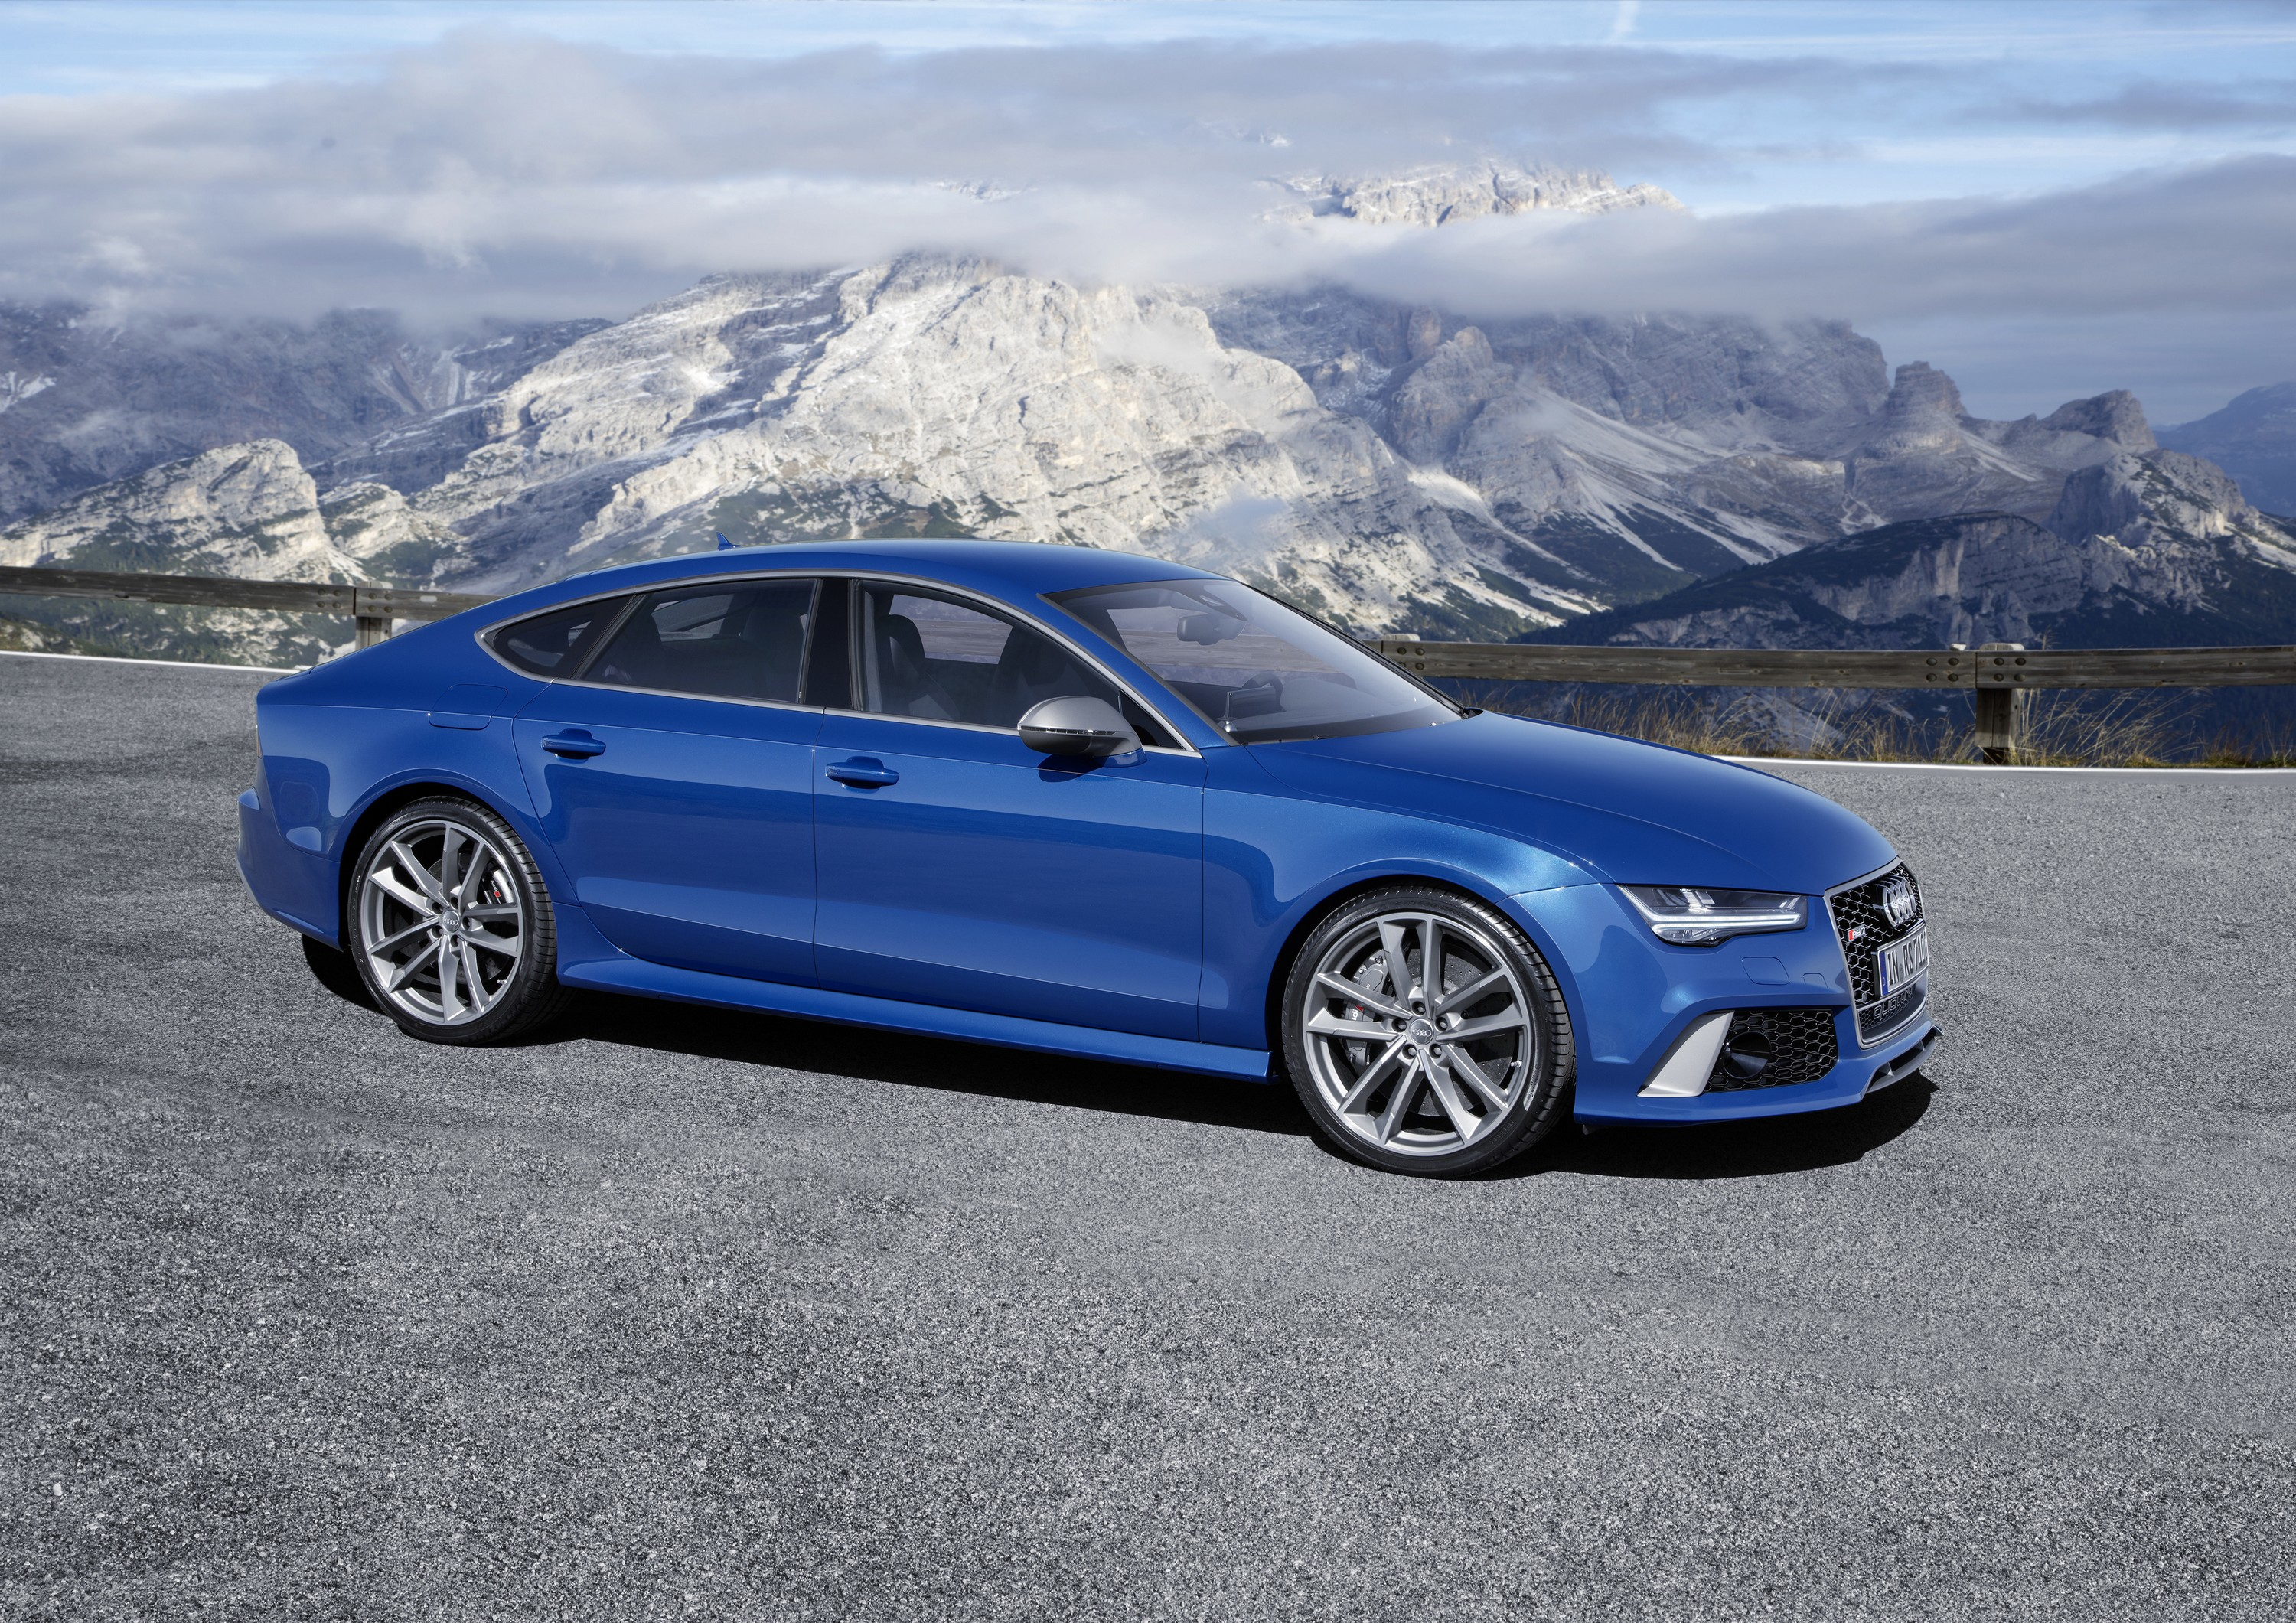 Audi RS7 'Performance' Model Coming To Canada